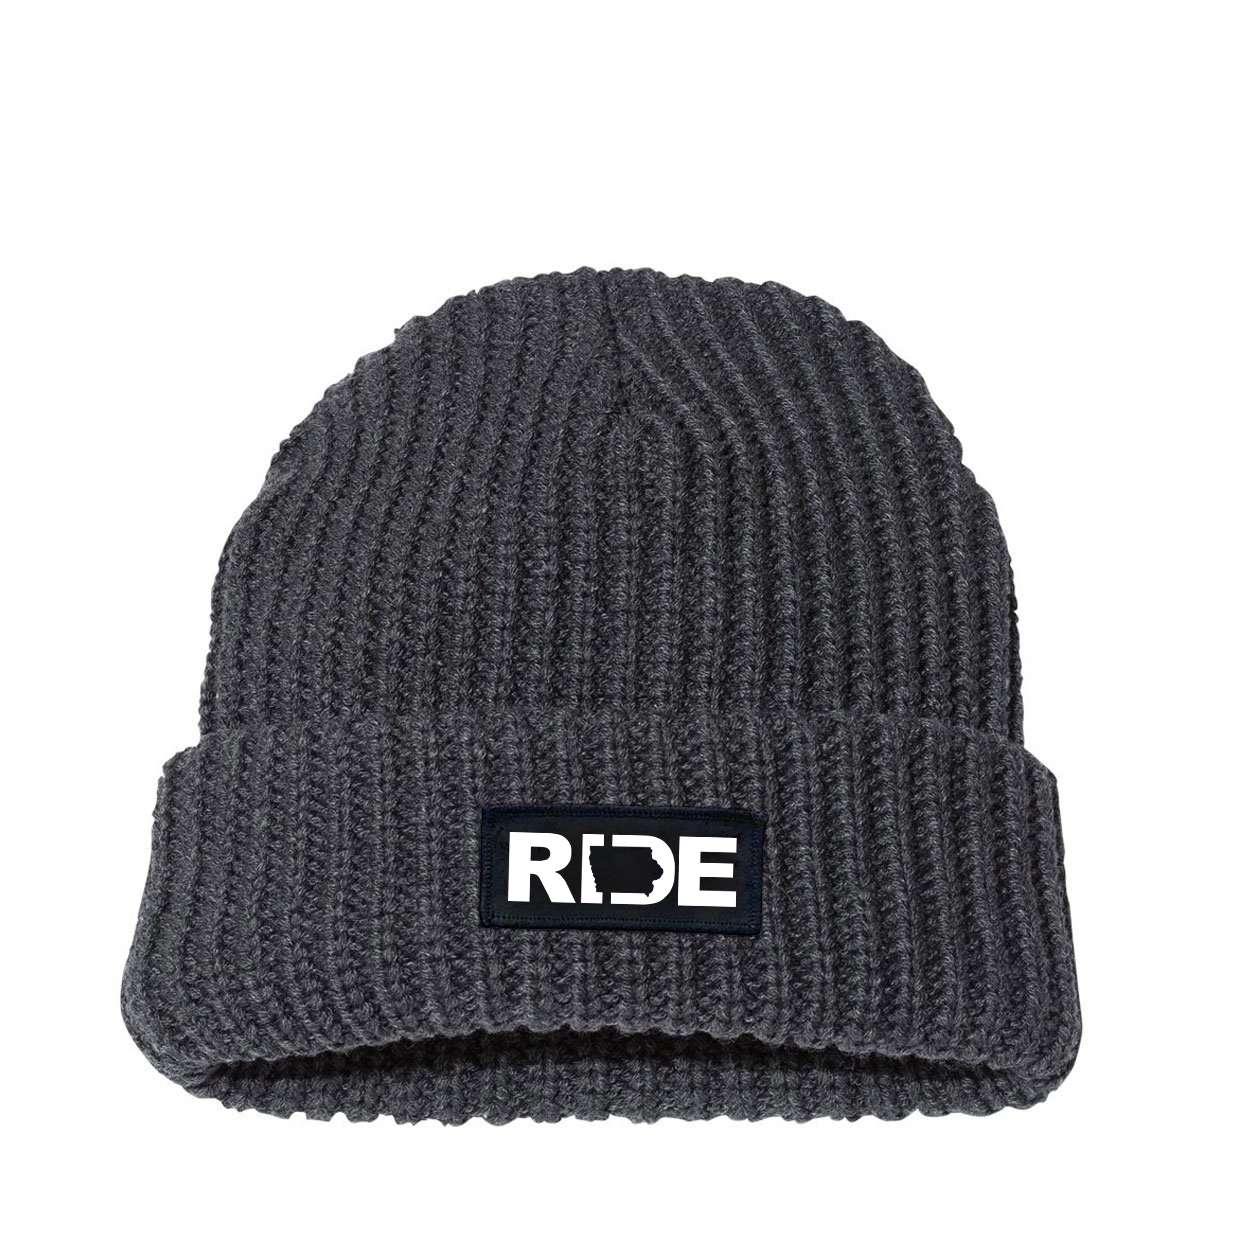 Ride Iowa Night Out Woven Patch Roll Up Jumbo Chunky Knit Beanie Charcoal (White Logo)